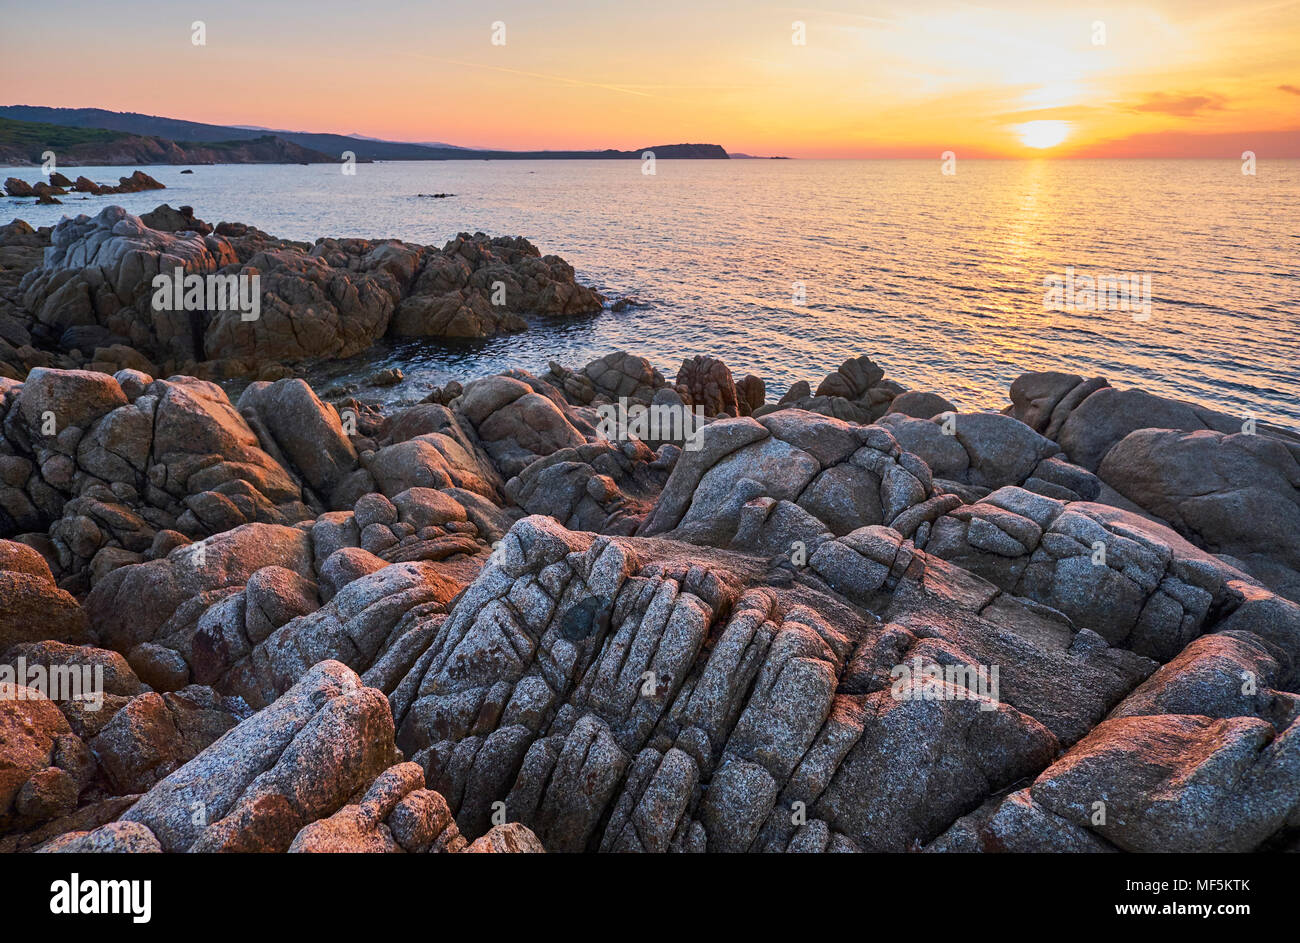 Italy, Sardinia, Rena Majori at sunset - Stock Image